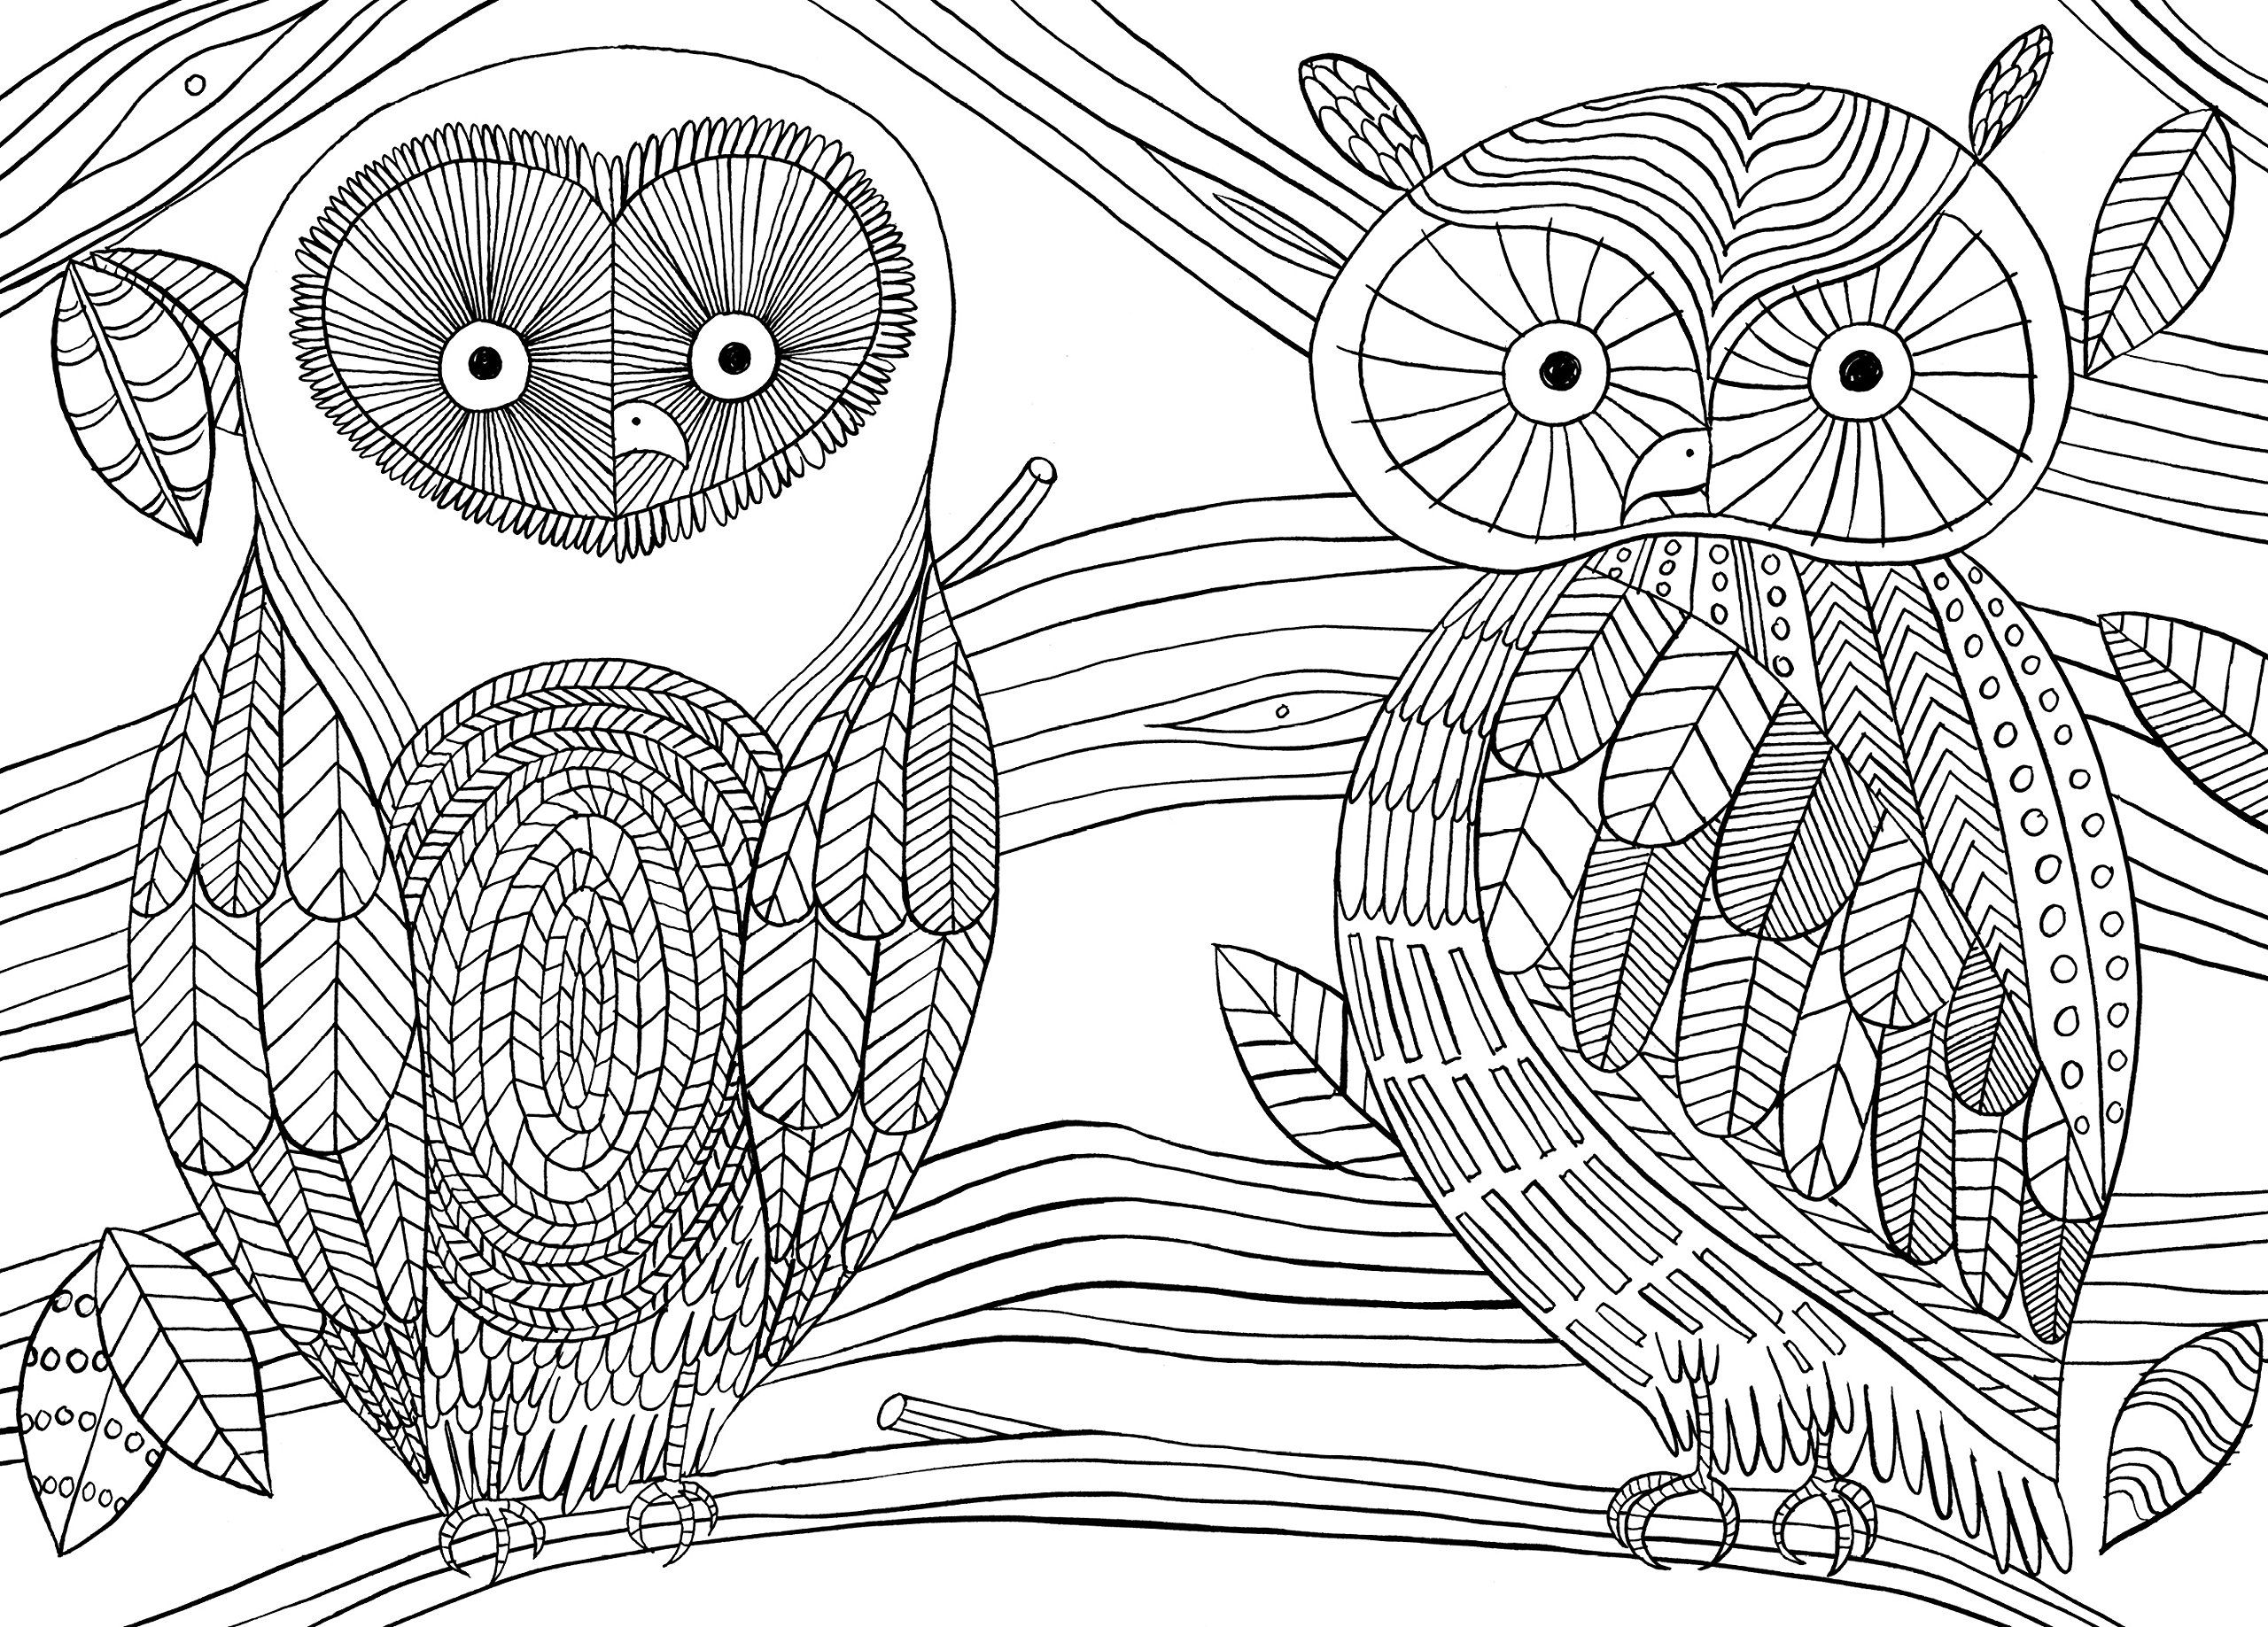 More Mindfulness Colouring: More anti stress art therapy for busy people I Emma Farrarons ...